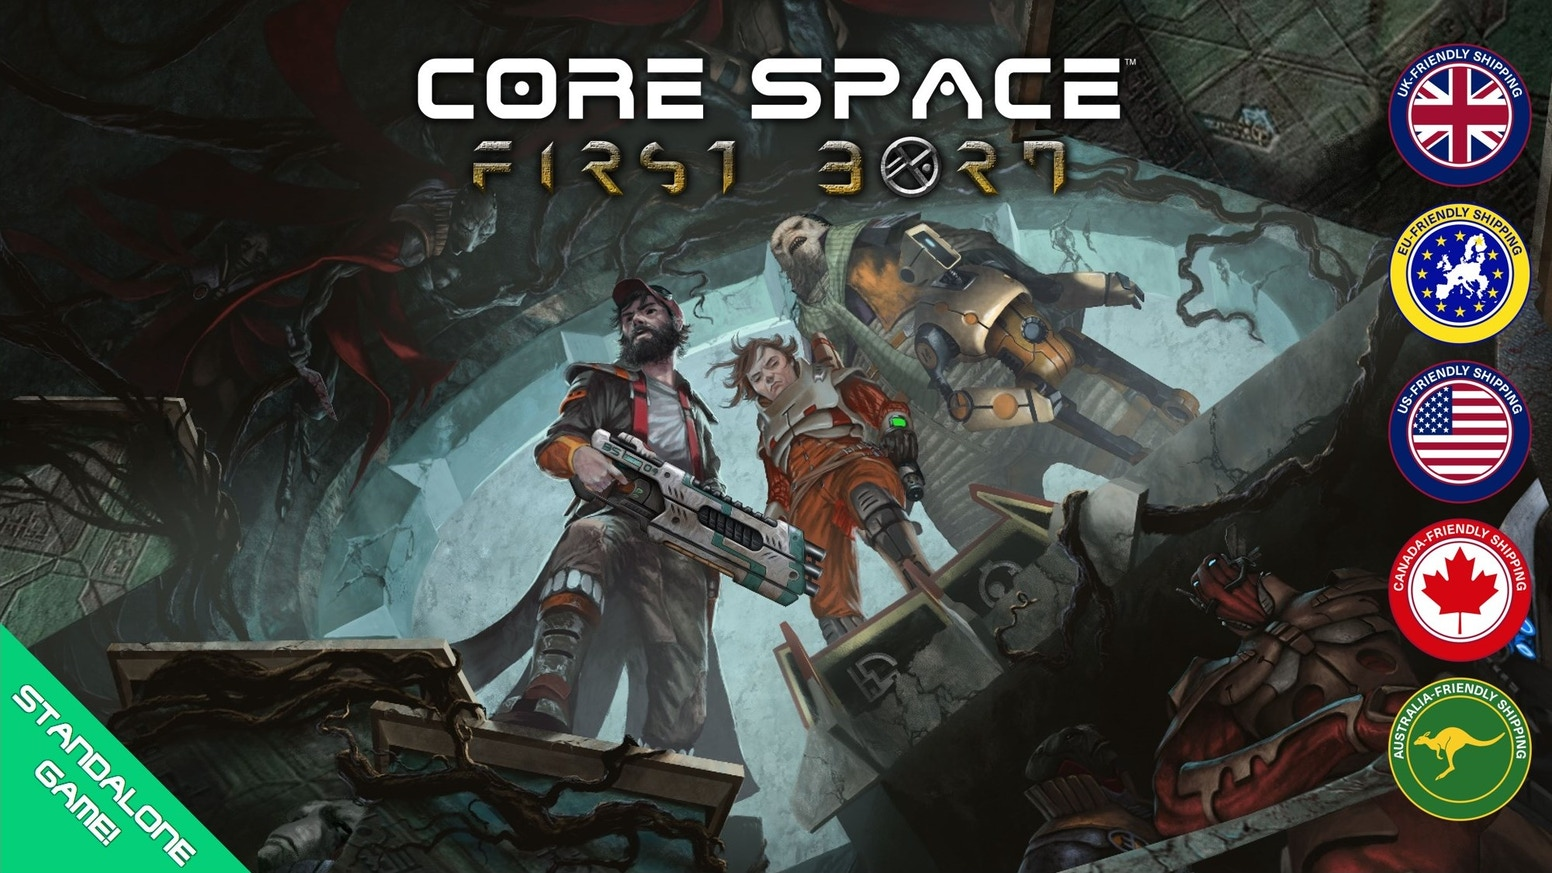 Return to 2019's bestseller Core Space with this standalone starter set featuring a terrifying new enemy, new terrain and more!